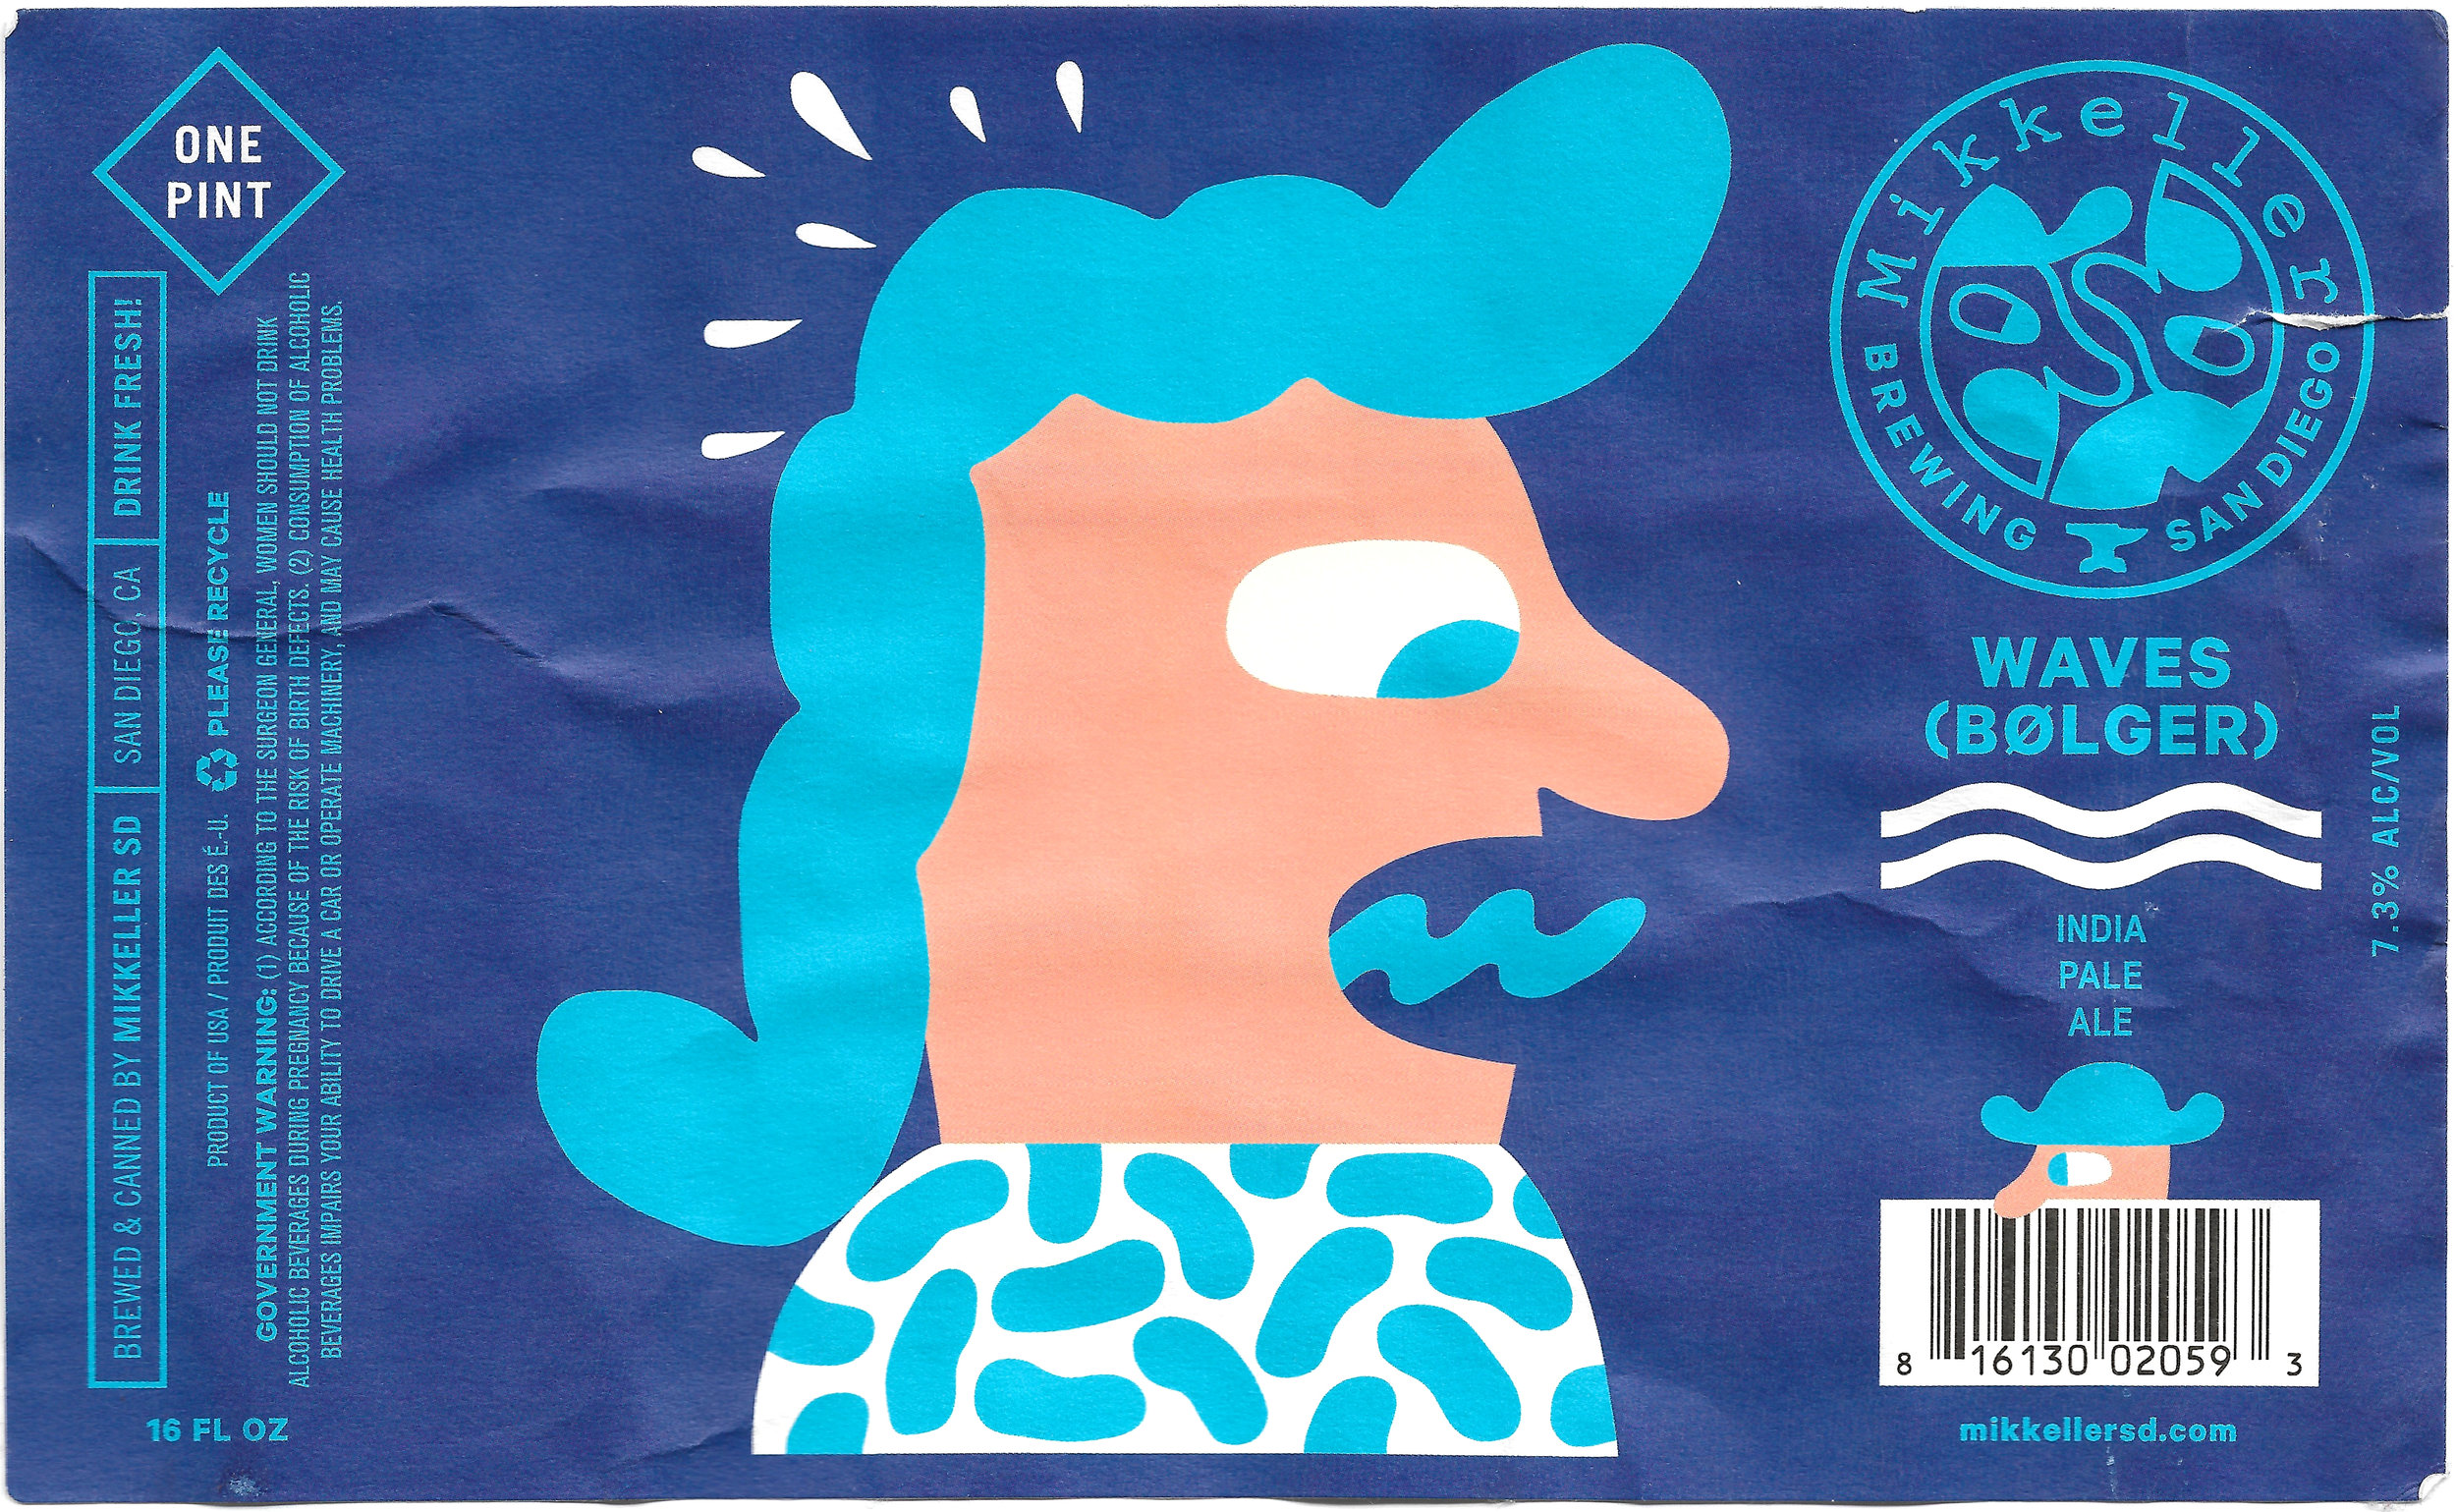 WAVES (BØLGER) by Keith Shore for Mikkeller San Diego.jpg